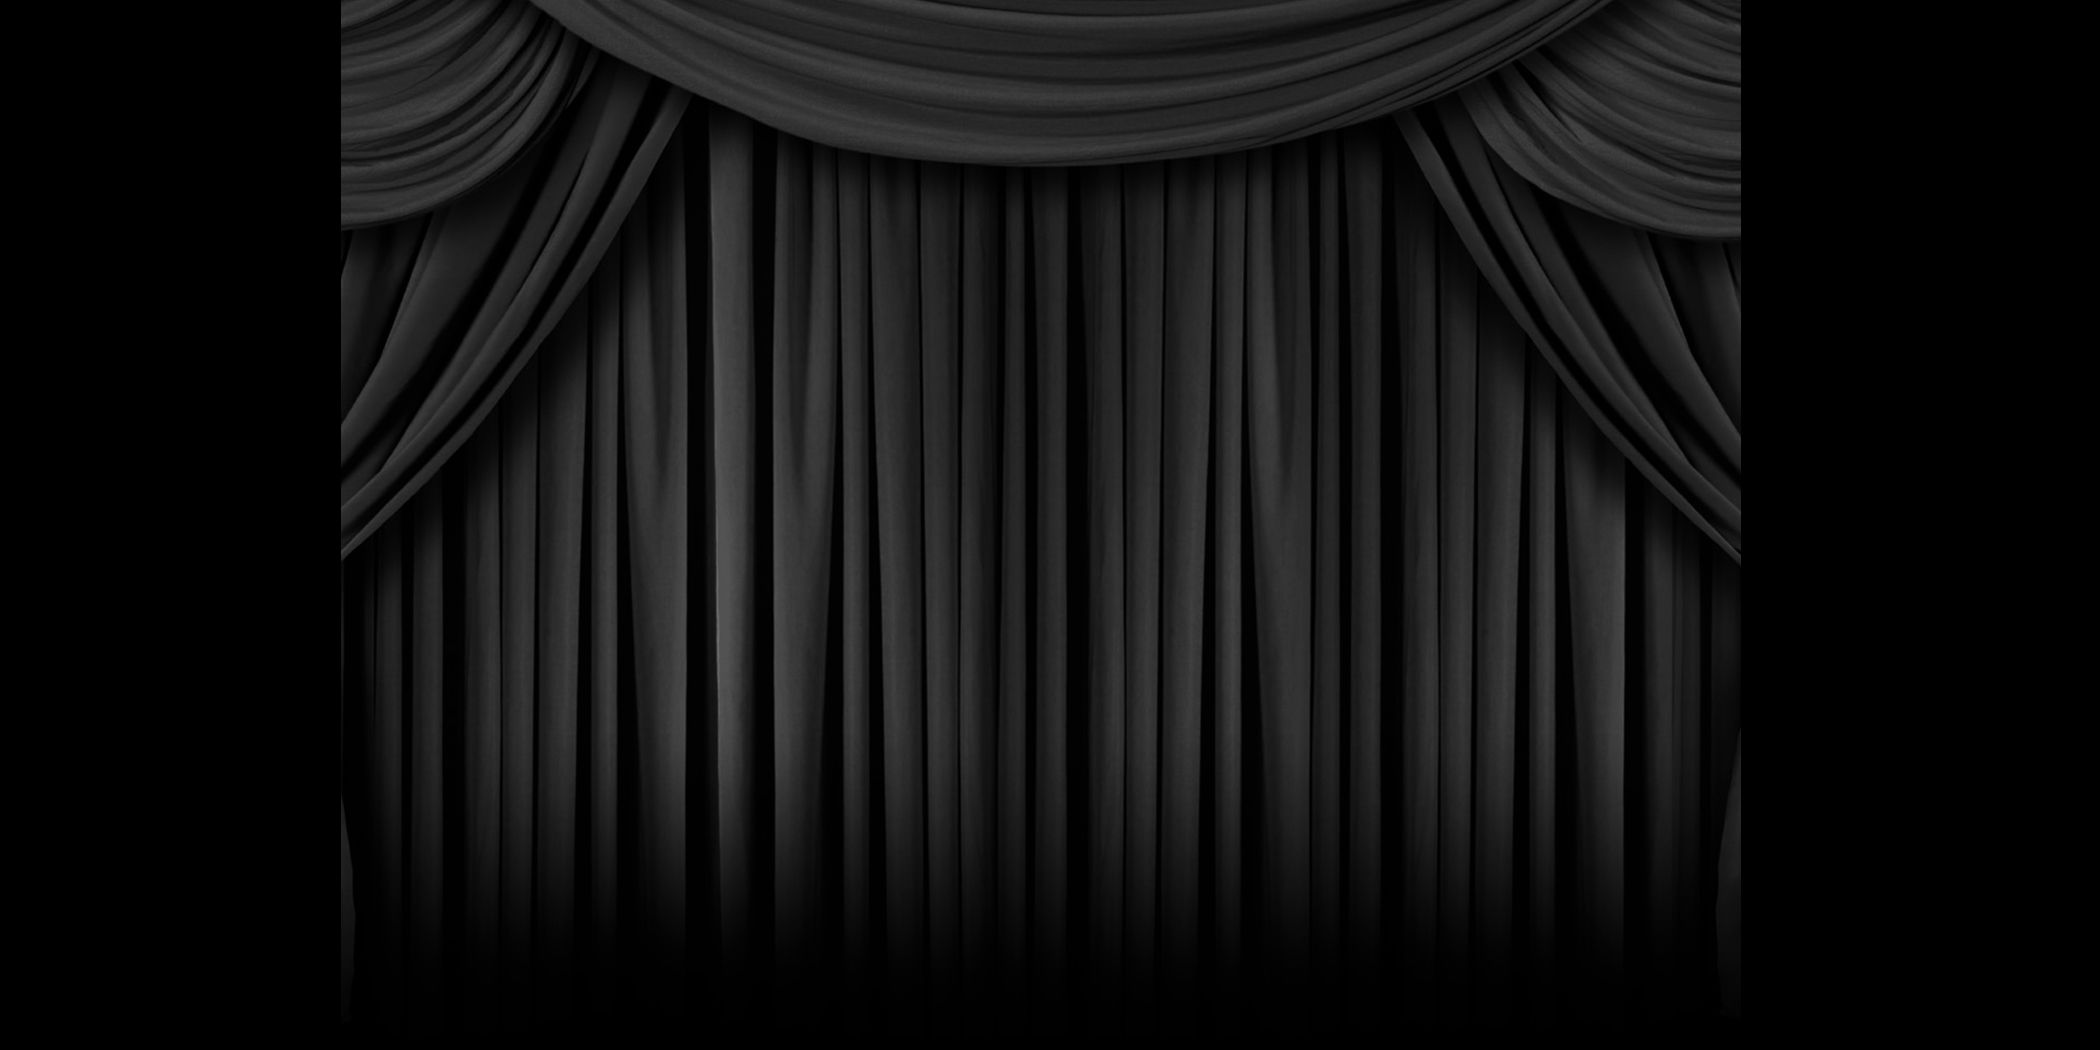 Theatre Curtains Black And White Google Search The